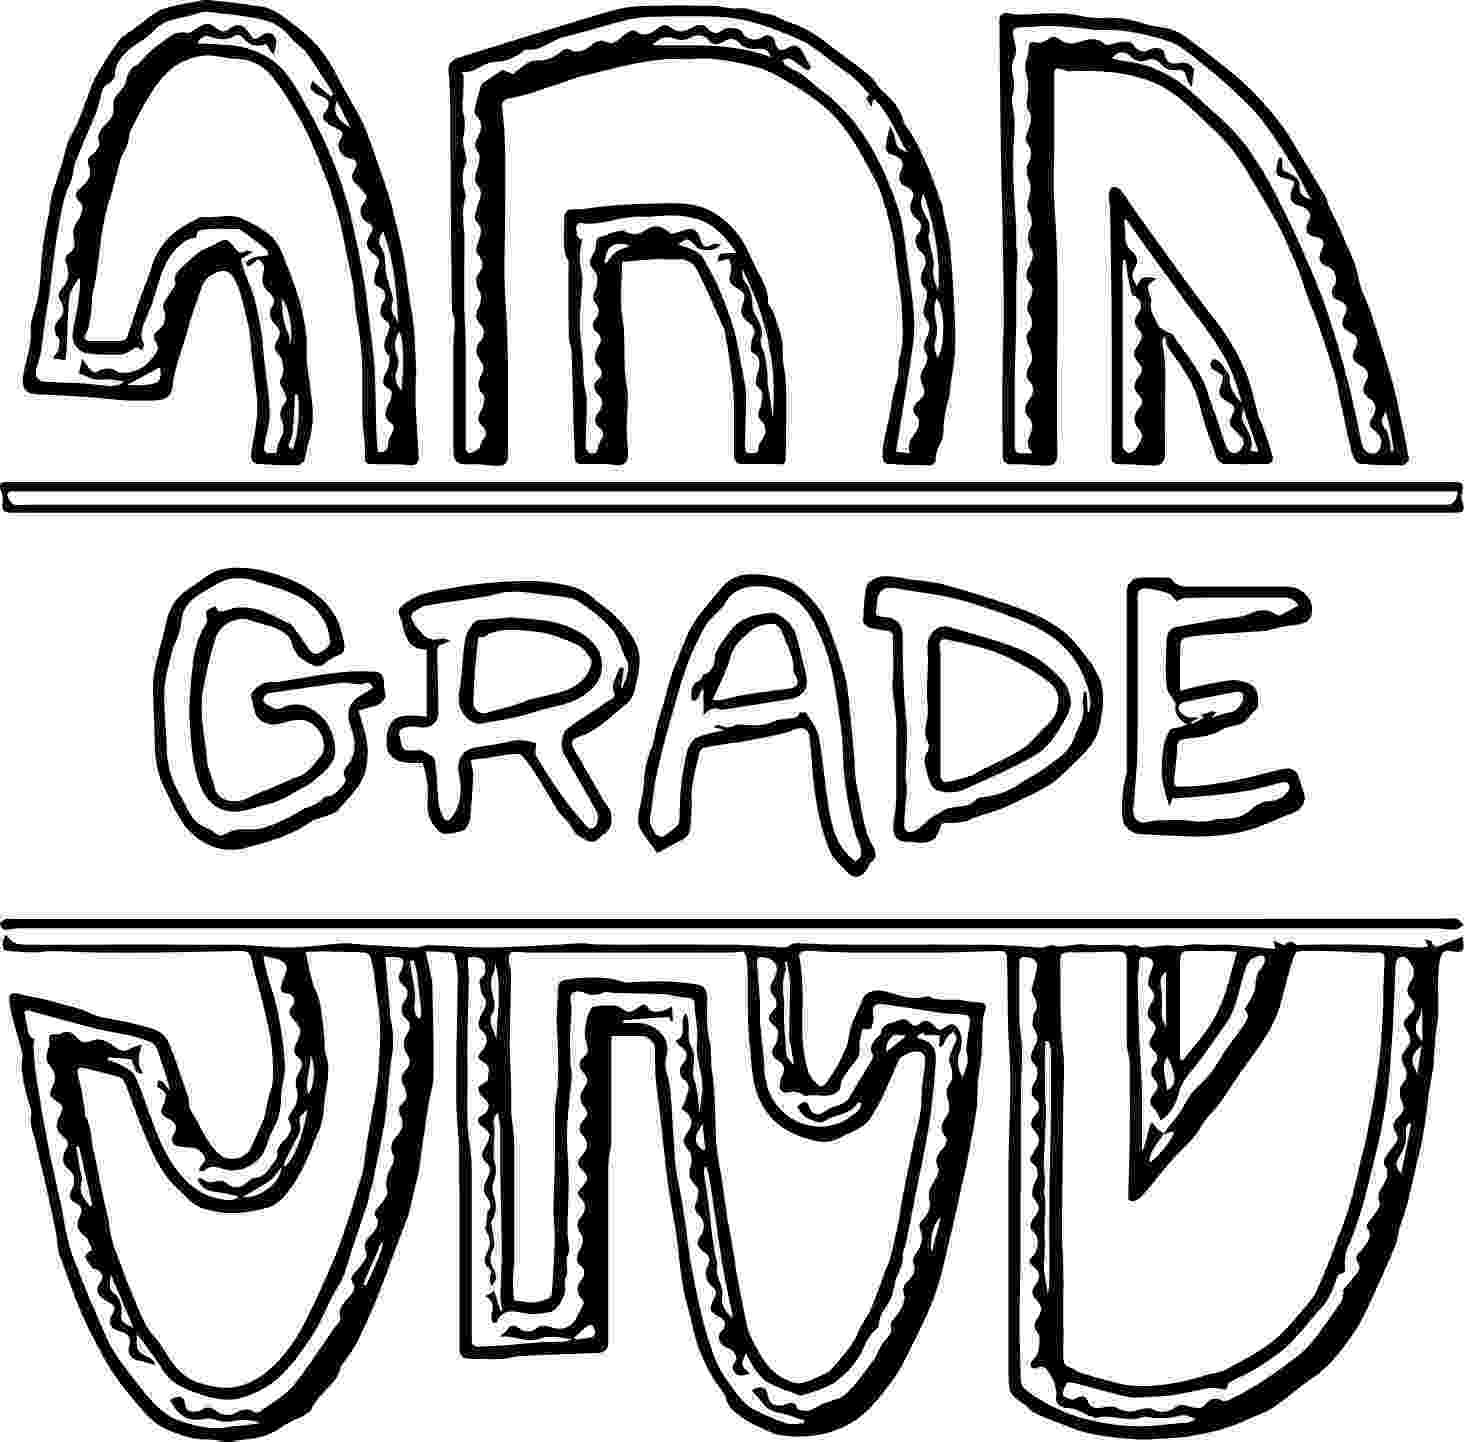 3rd grade coloring pages fsf split 3rd grade 3rd grade coloring page grade 3rd pages coloring